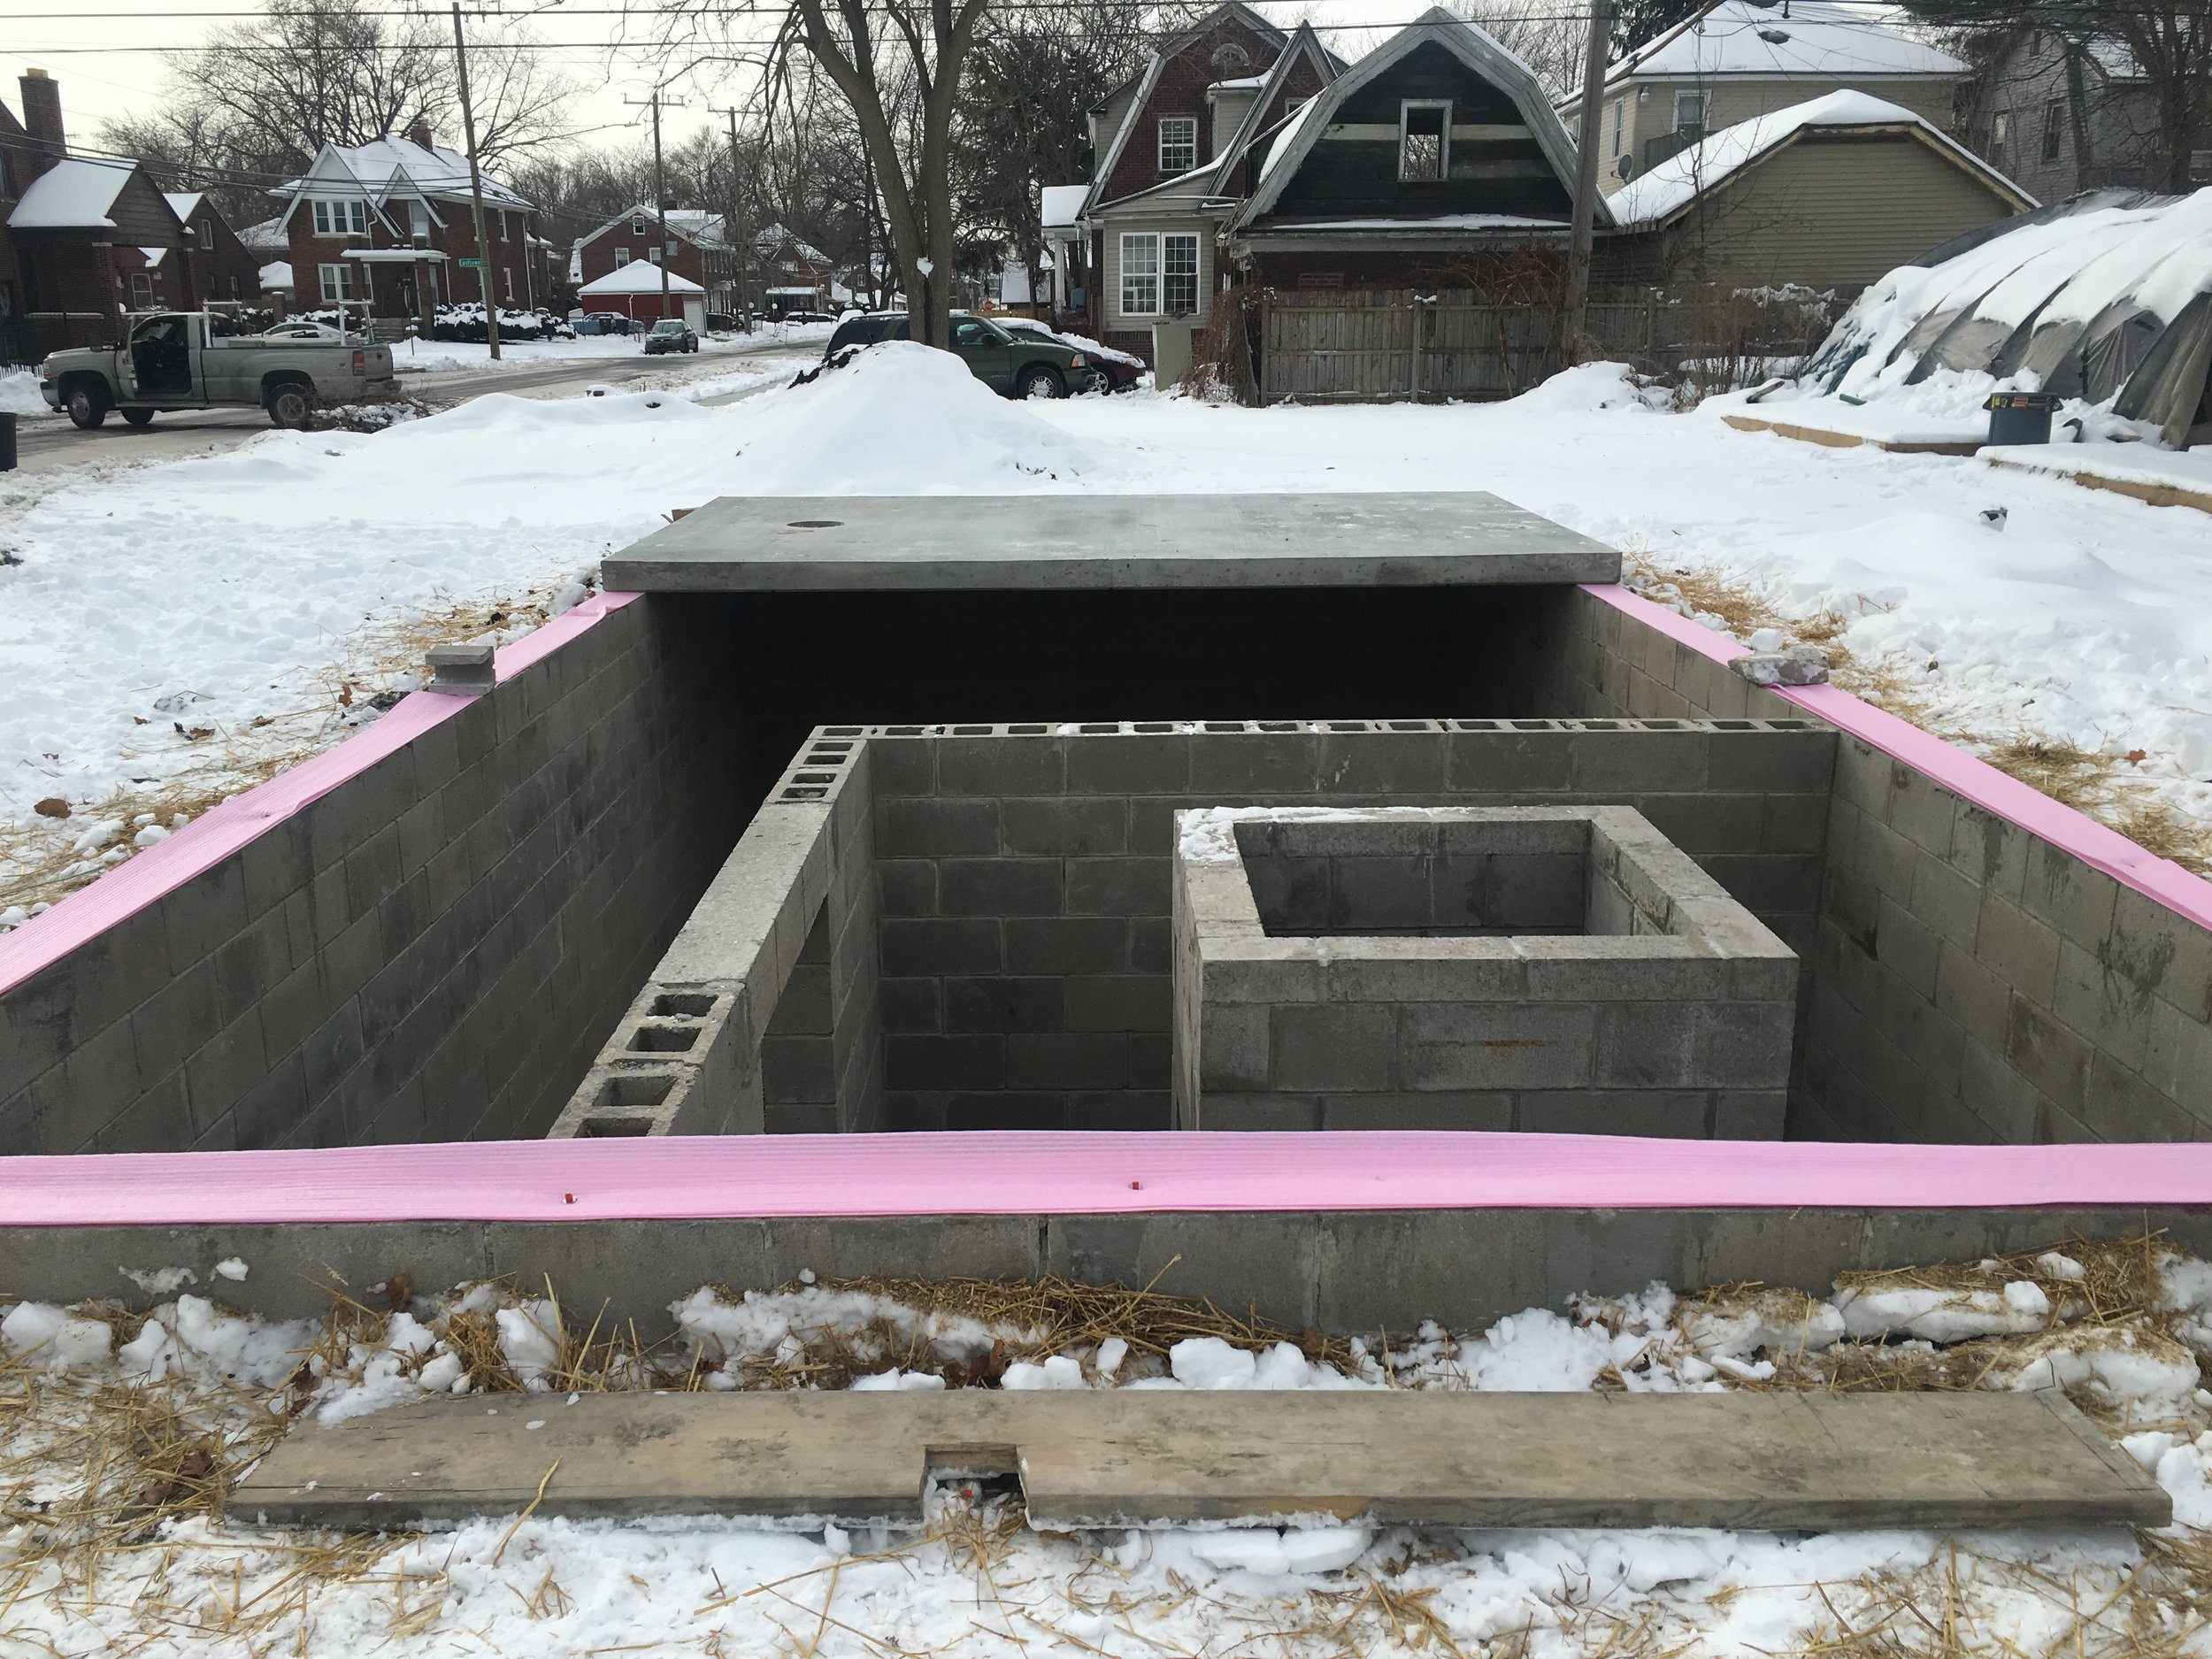 The shaft on the right is built to accommodate a manual dumb-waiter that will extend from the top of the root cellar to the top of the hoop house. It will be used to lower and raise boxes of dahlia tubers. There will also be a three tier staircase built around the dumb-waiter staff. Then there is an inner door where that leads to the main chamber where the boxes of tubers will be stored on shelves that line the walls.